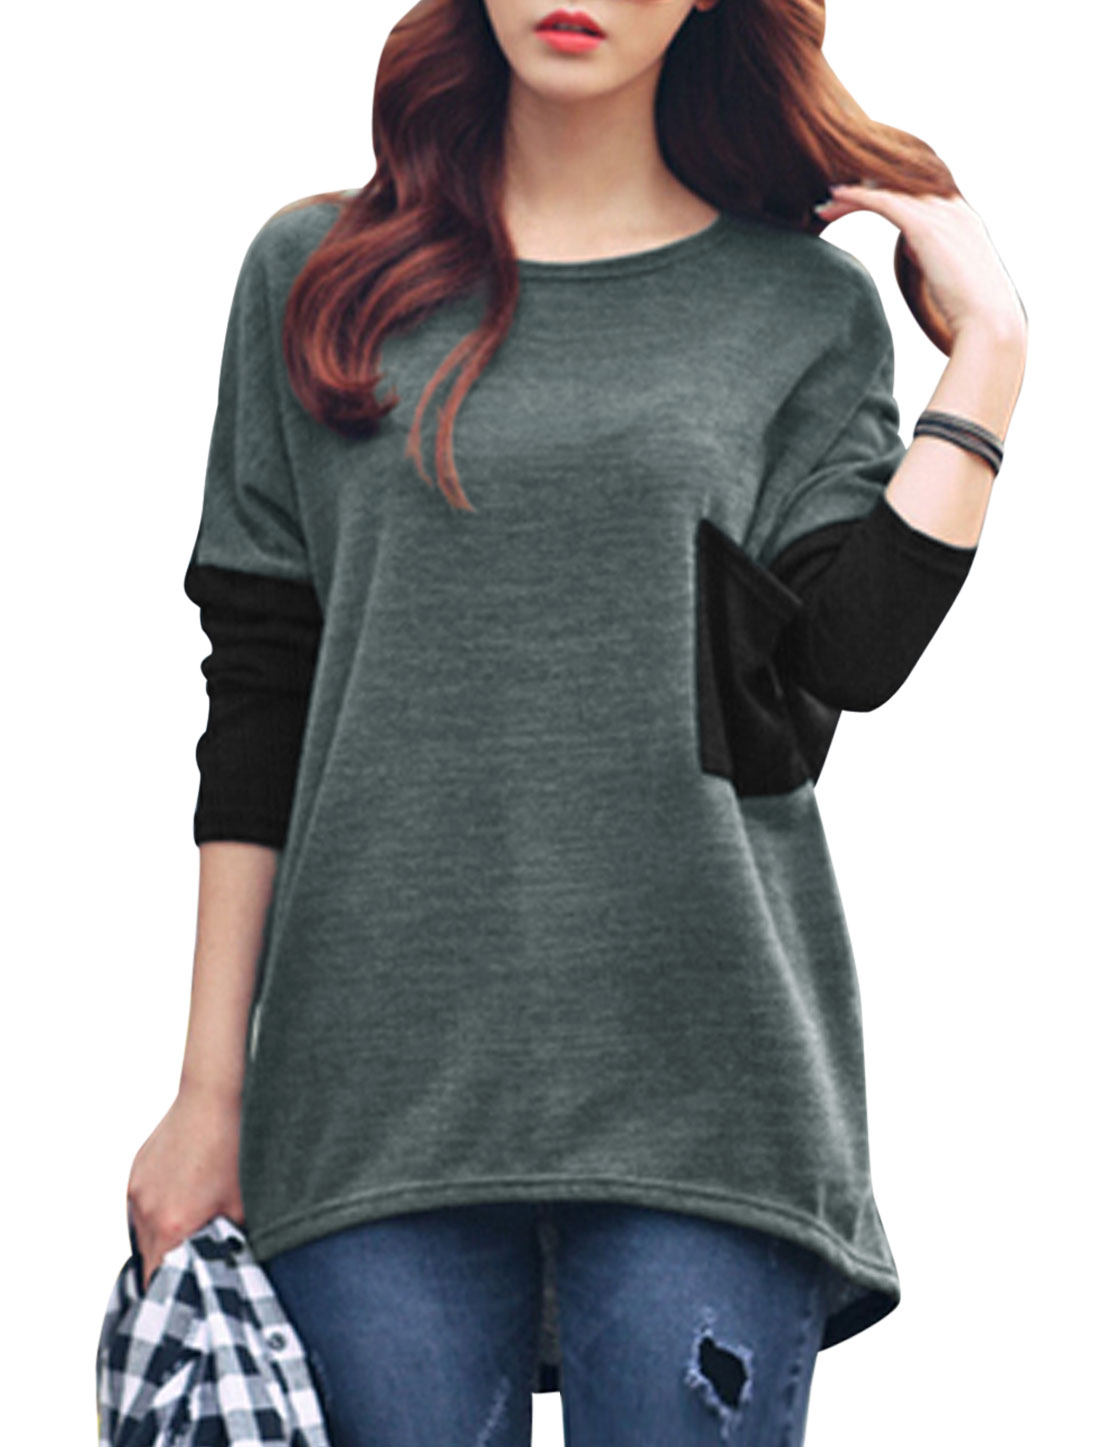 Women Long Batwing Sleeve Color Block Tunic Shirt Dark Gray Black XS